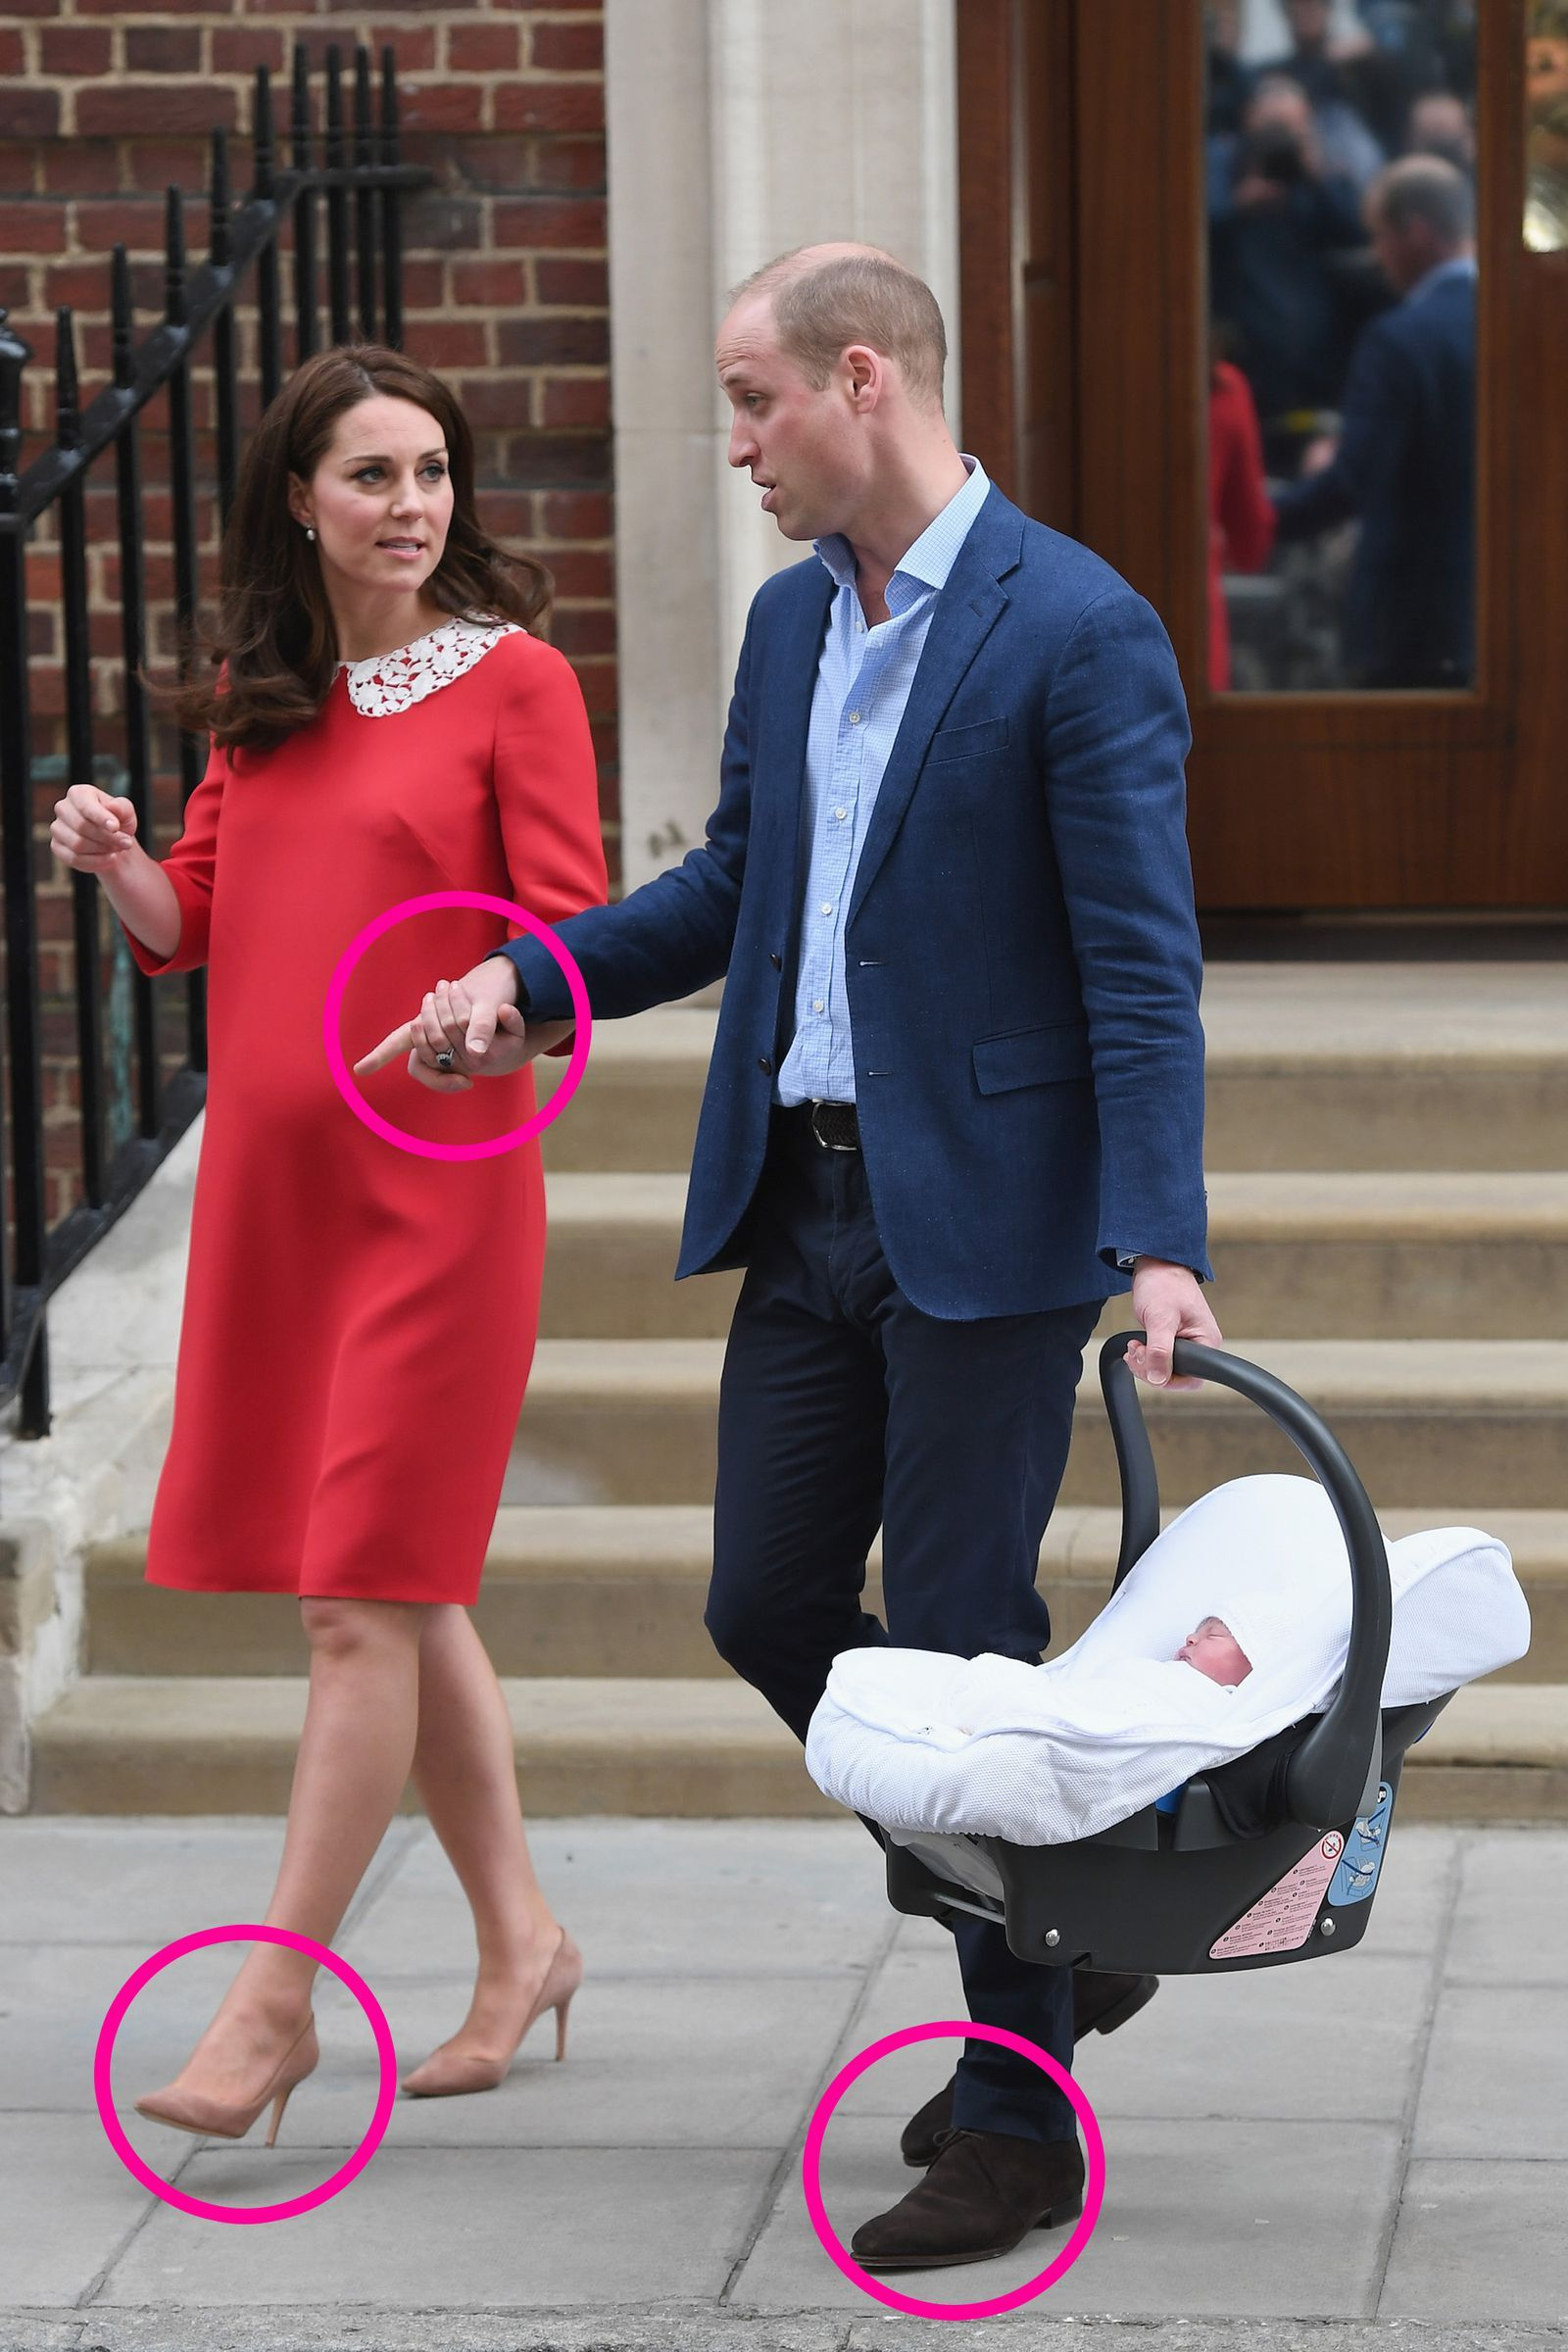 Body Language Experts Analyze Prince William and Kate With Their New Baby forecast